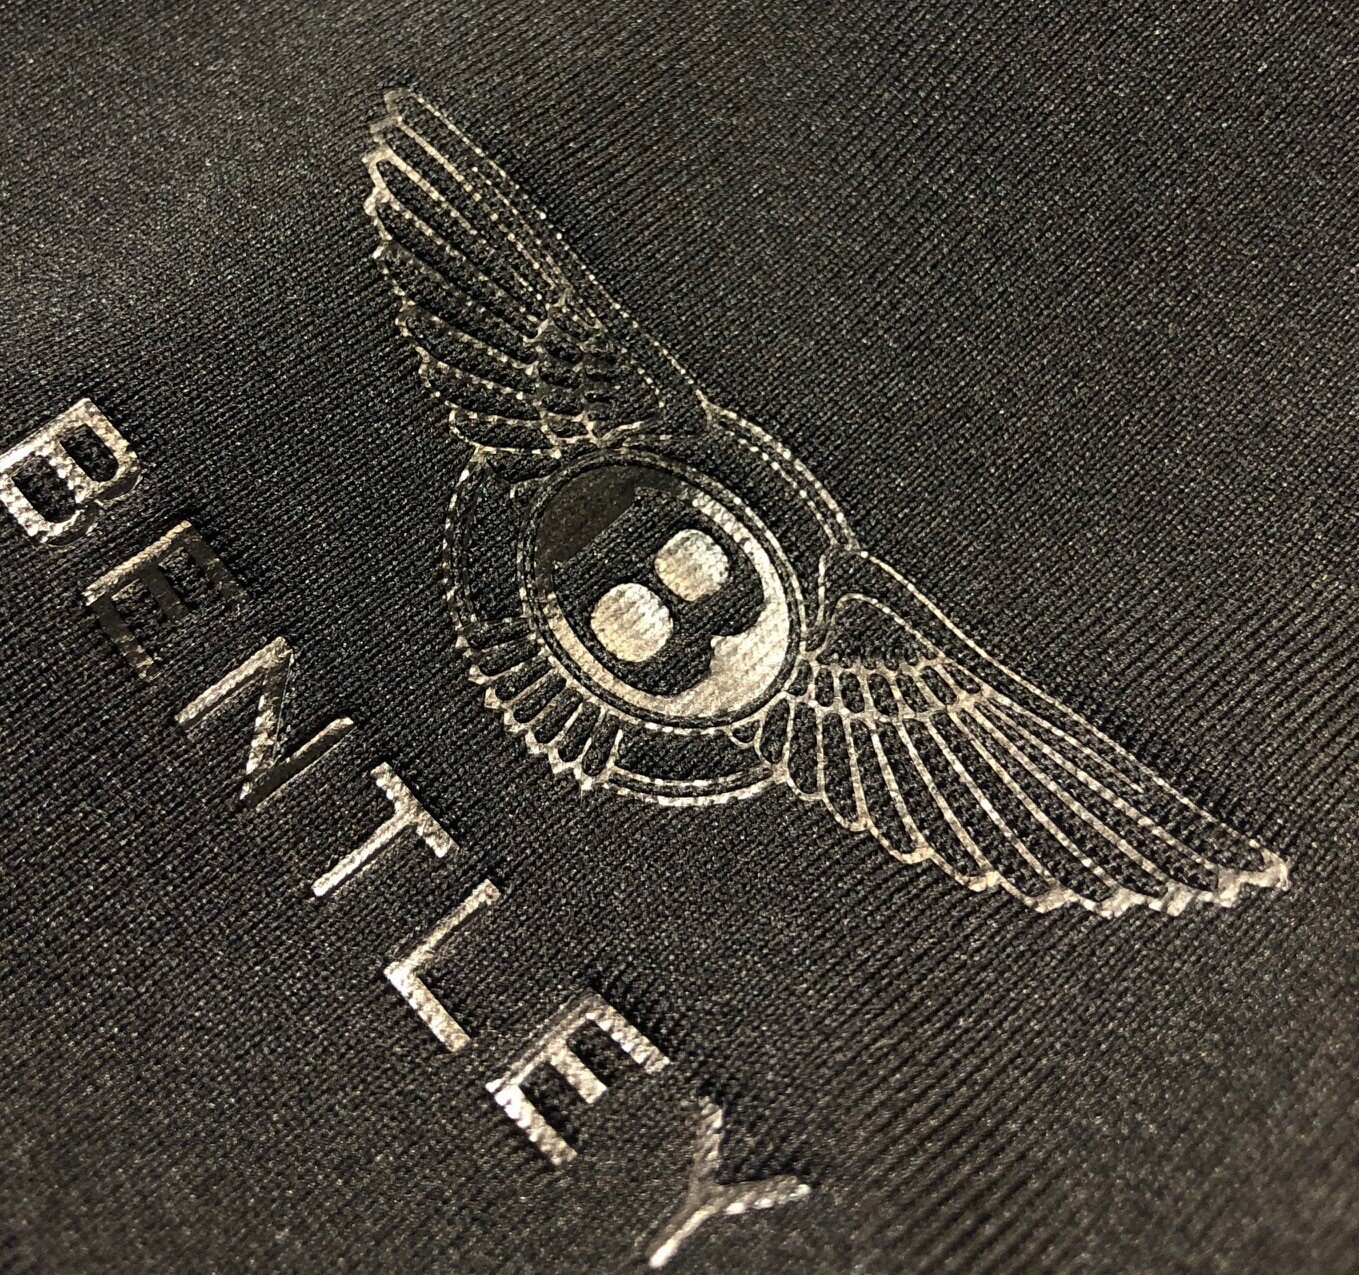 logounltd_laser_etching_embroidery_screen_printing_apparel_uniform_custom_tshirts_t_shirt_kirkland_bellevue_seattle_redmond_woodinville_branded_merchandise_promotional_products_logo_unltd_deboss_bentley (6).jpg